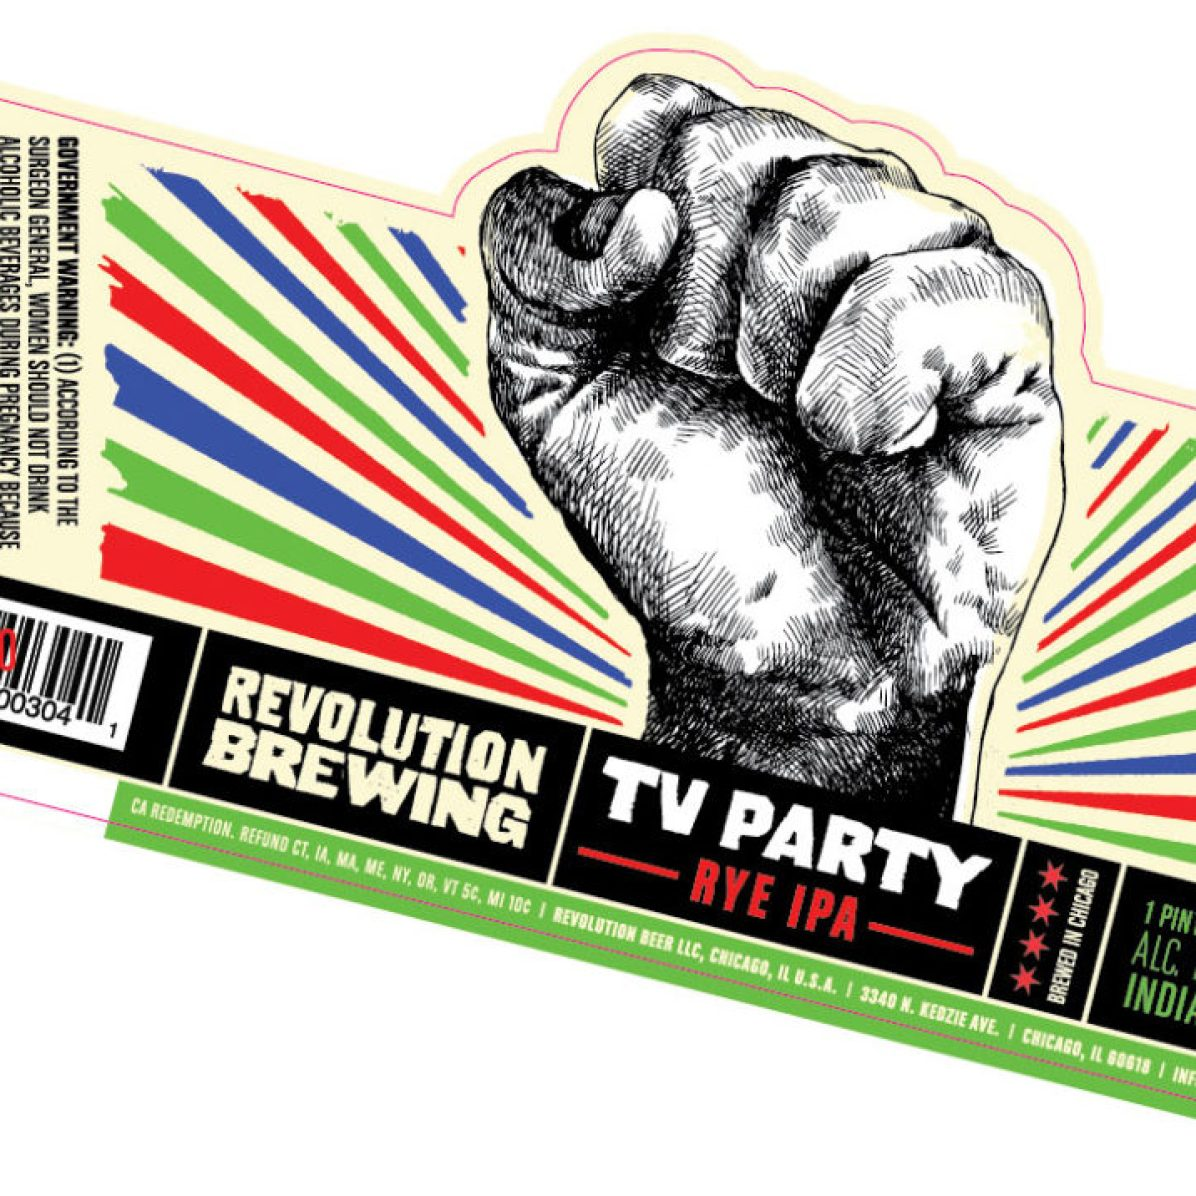 Revolution TV Party